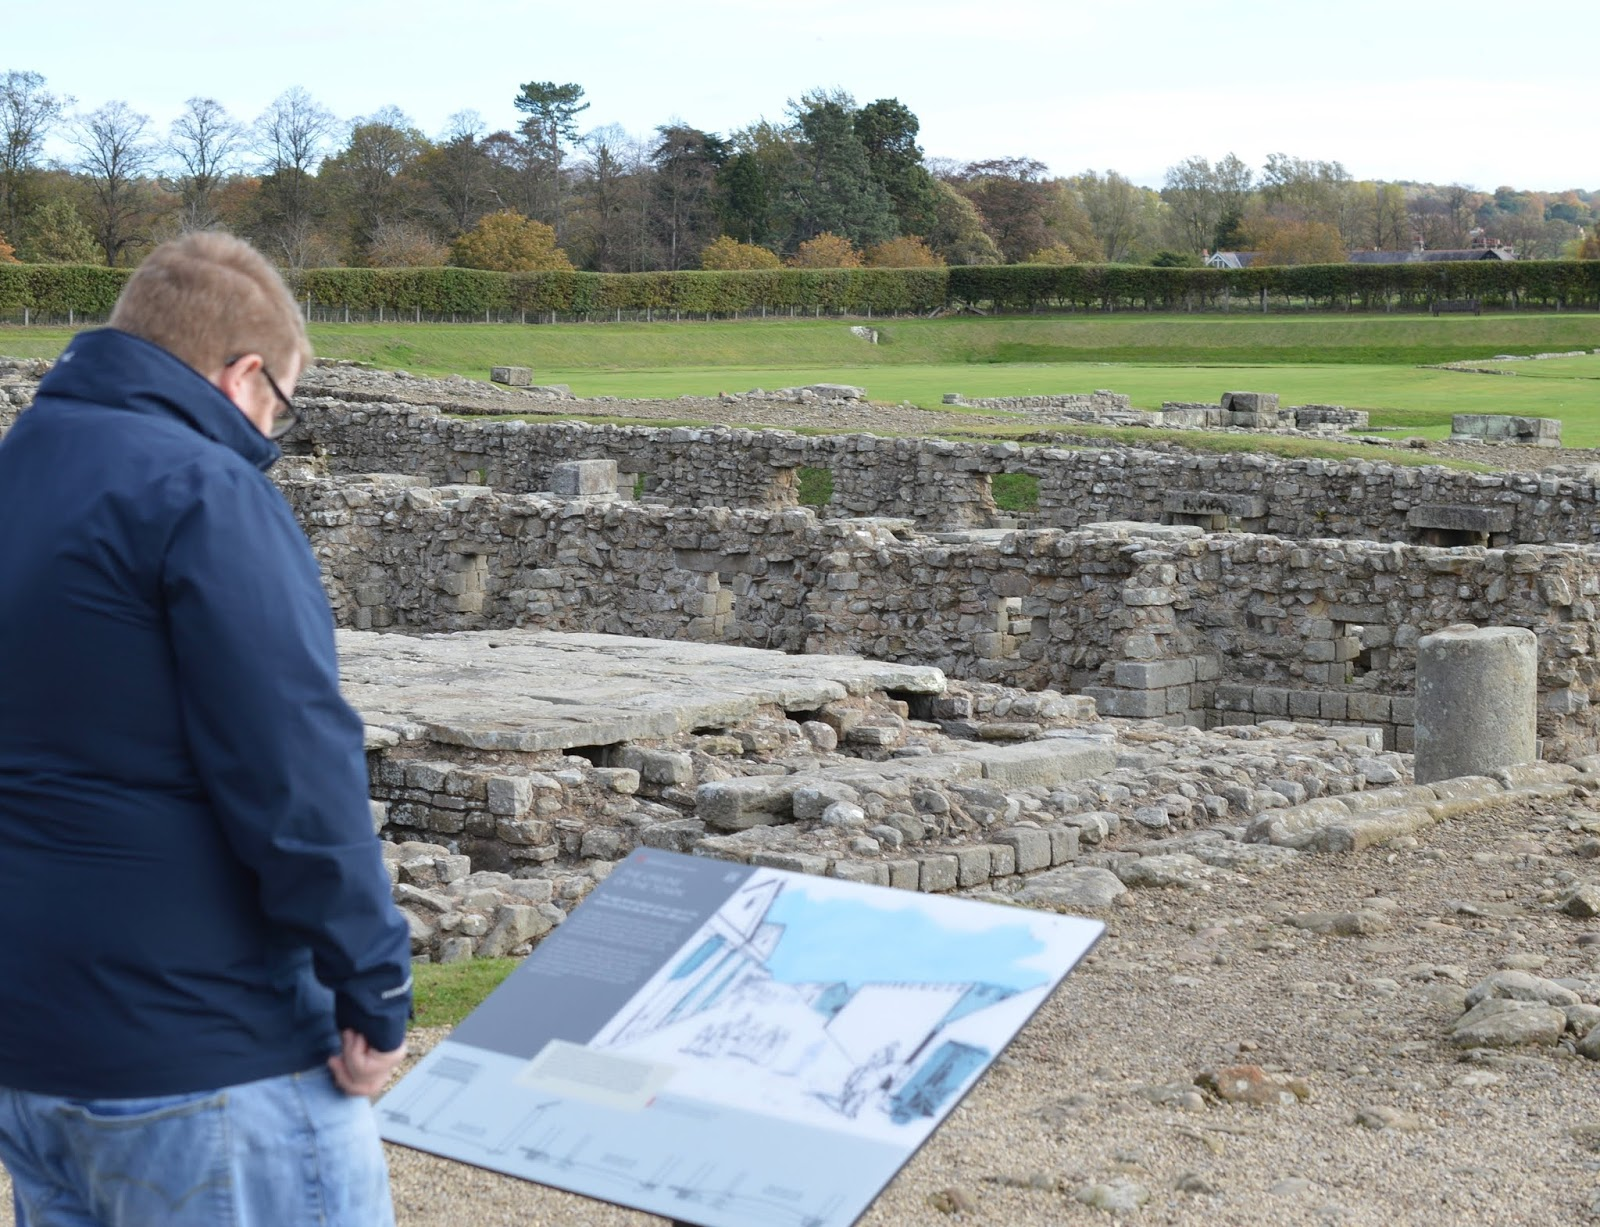 A lovely pub lunch & a trip to Corbridge Roman Town with kids - information signs